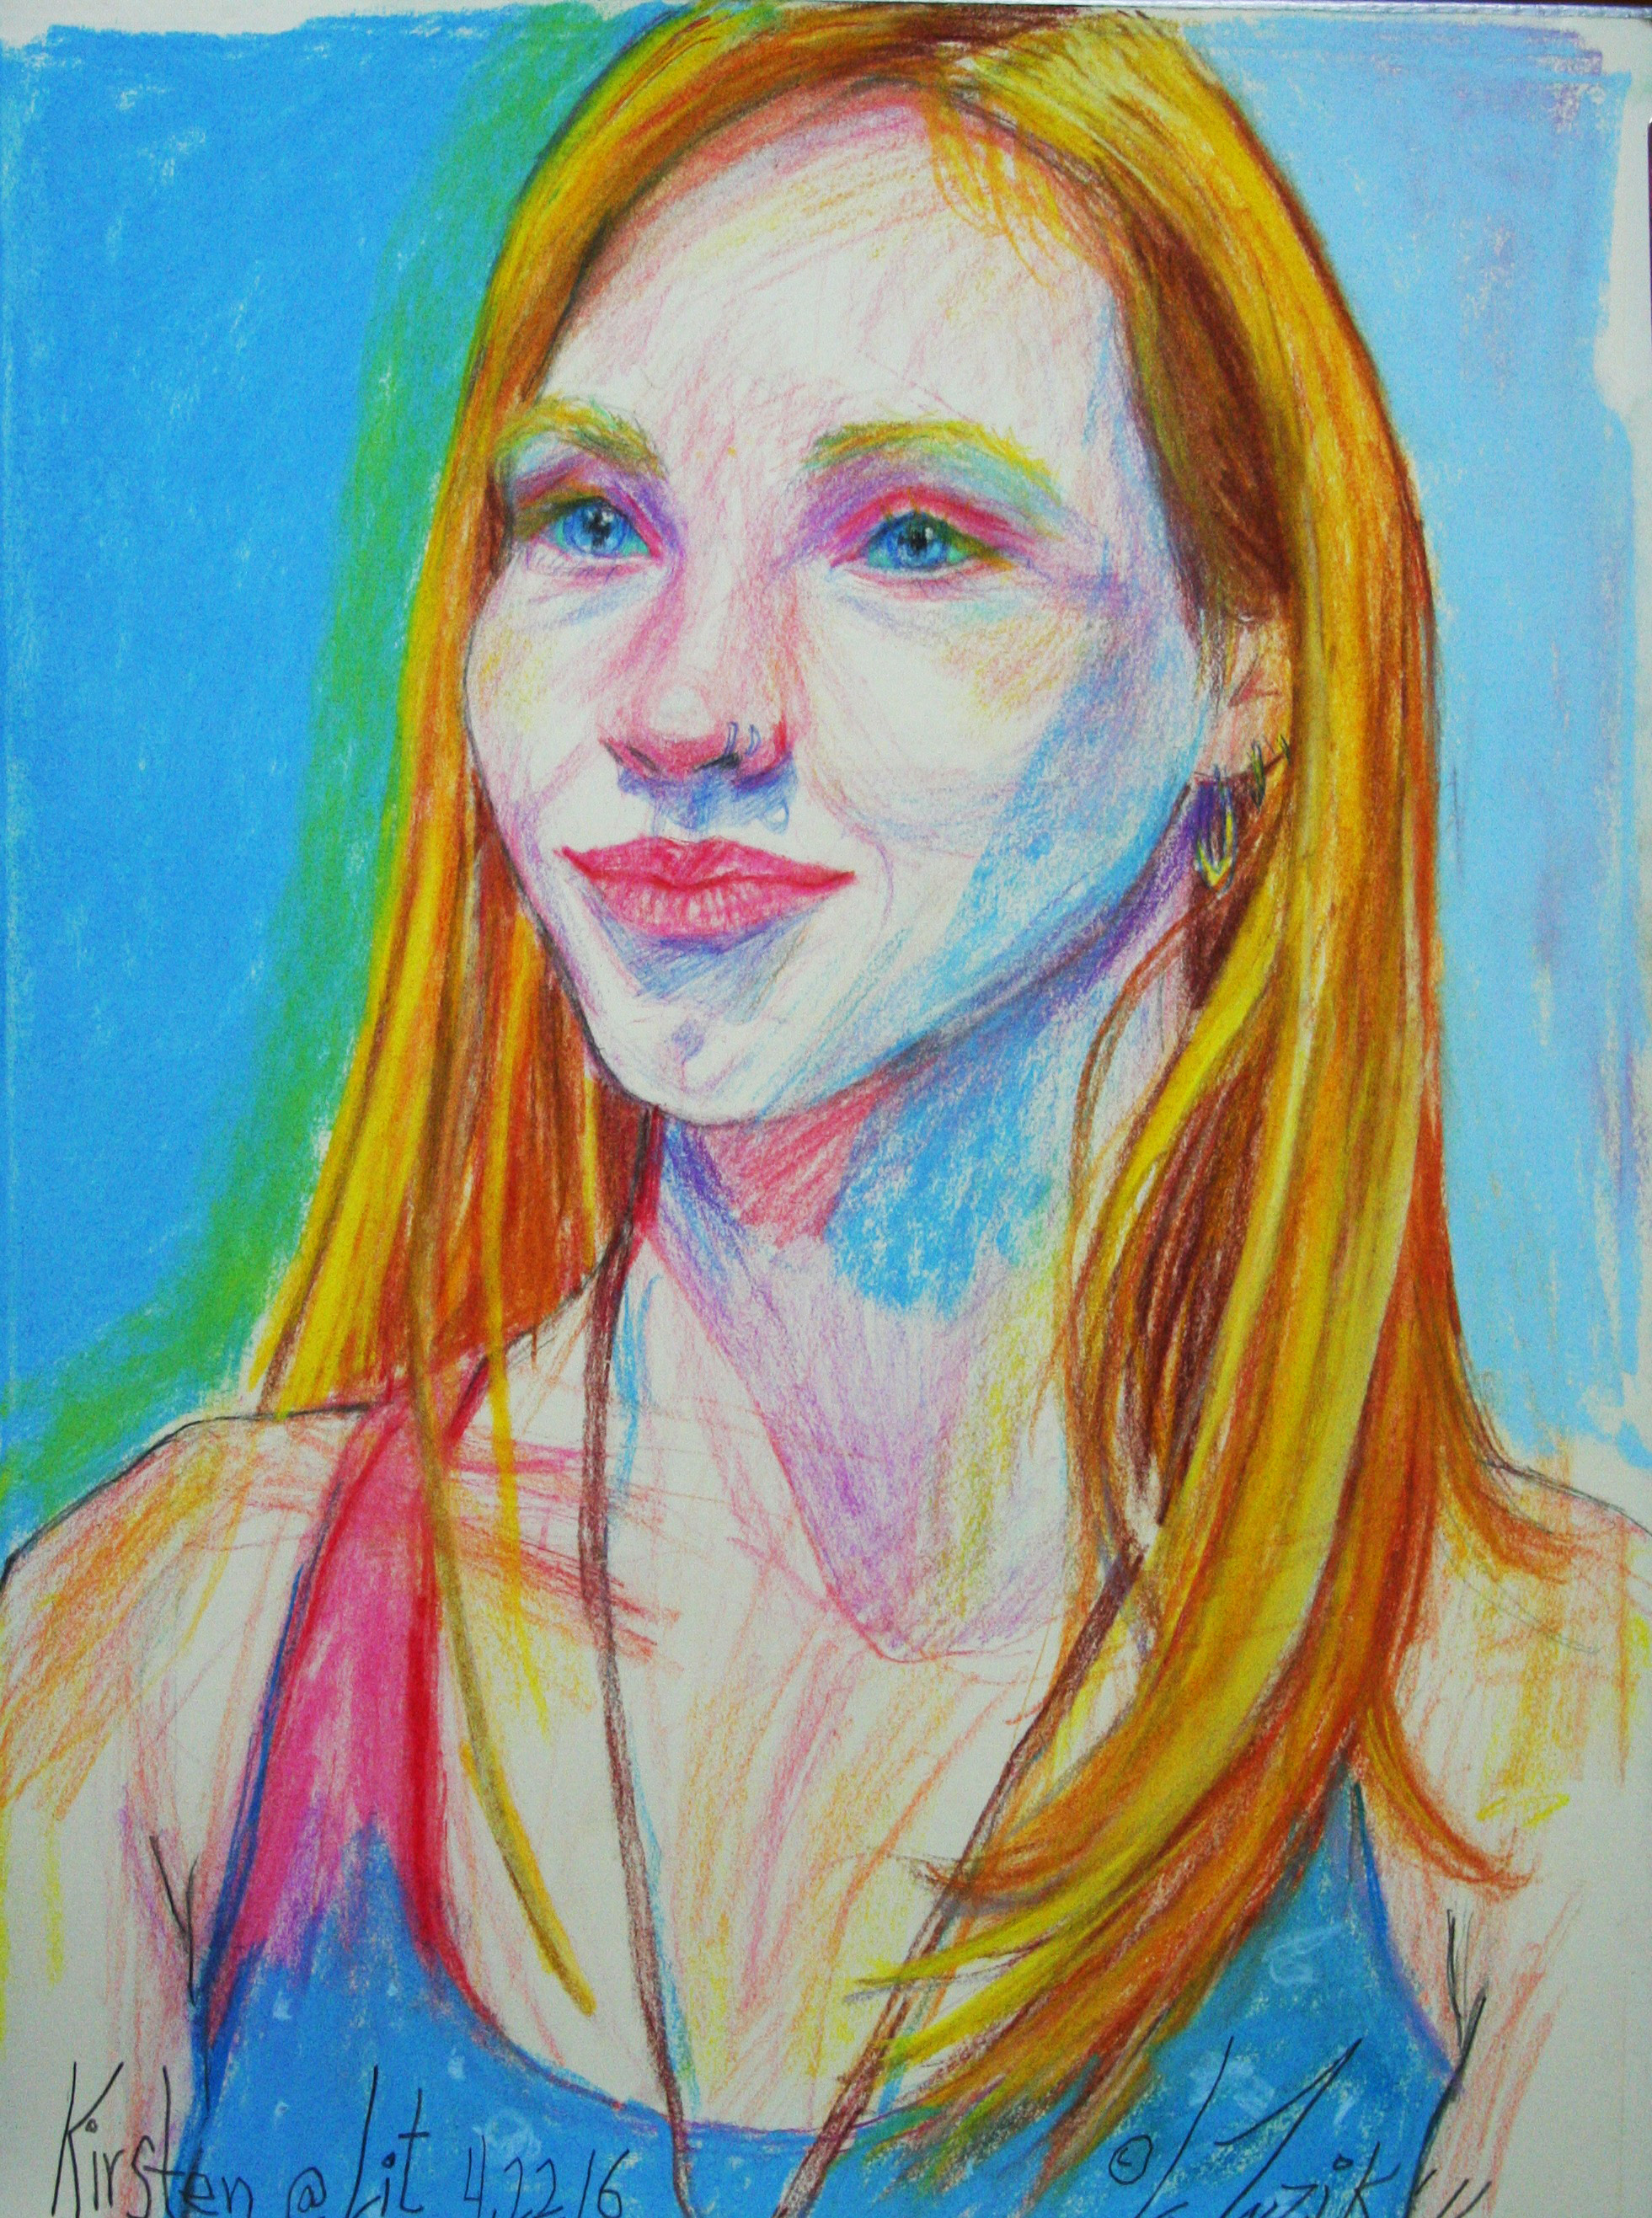 Larry Zuzik did this 3-hour pastel drawing.